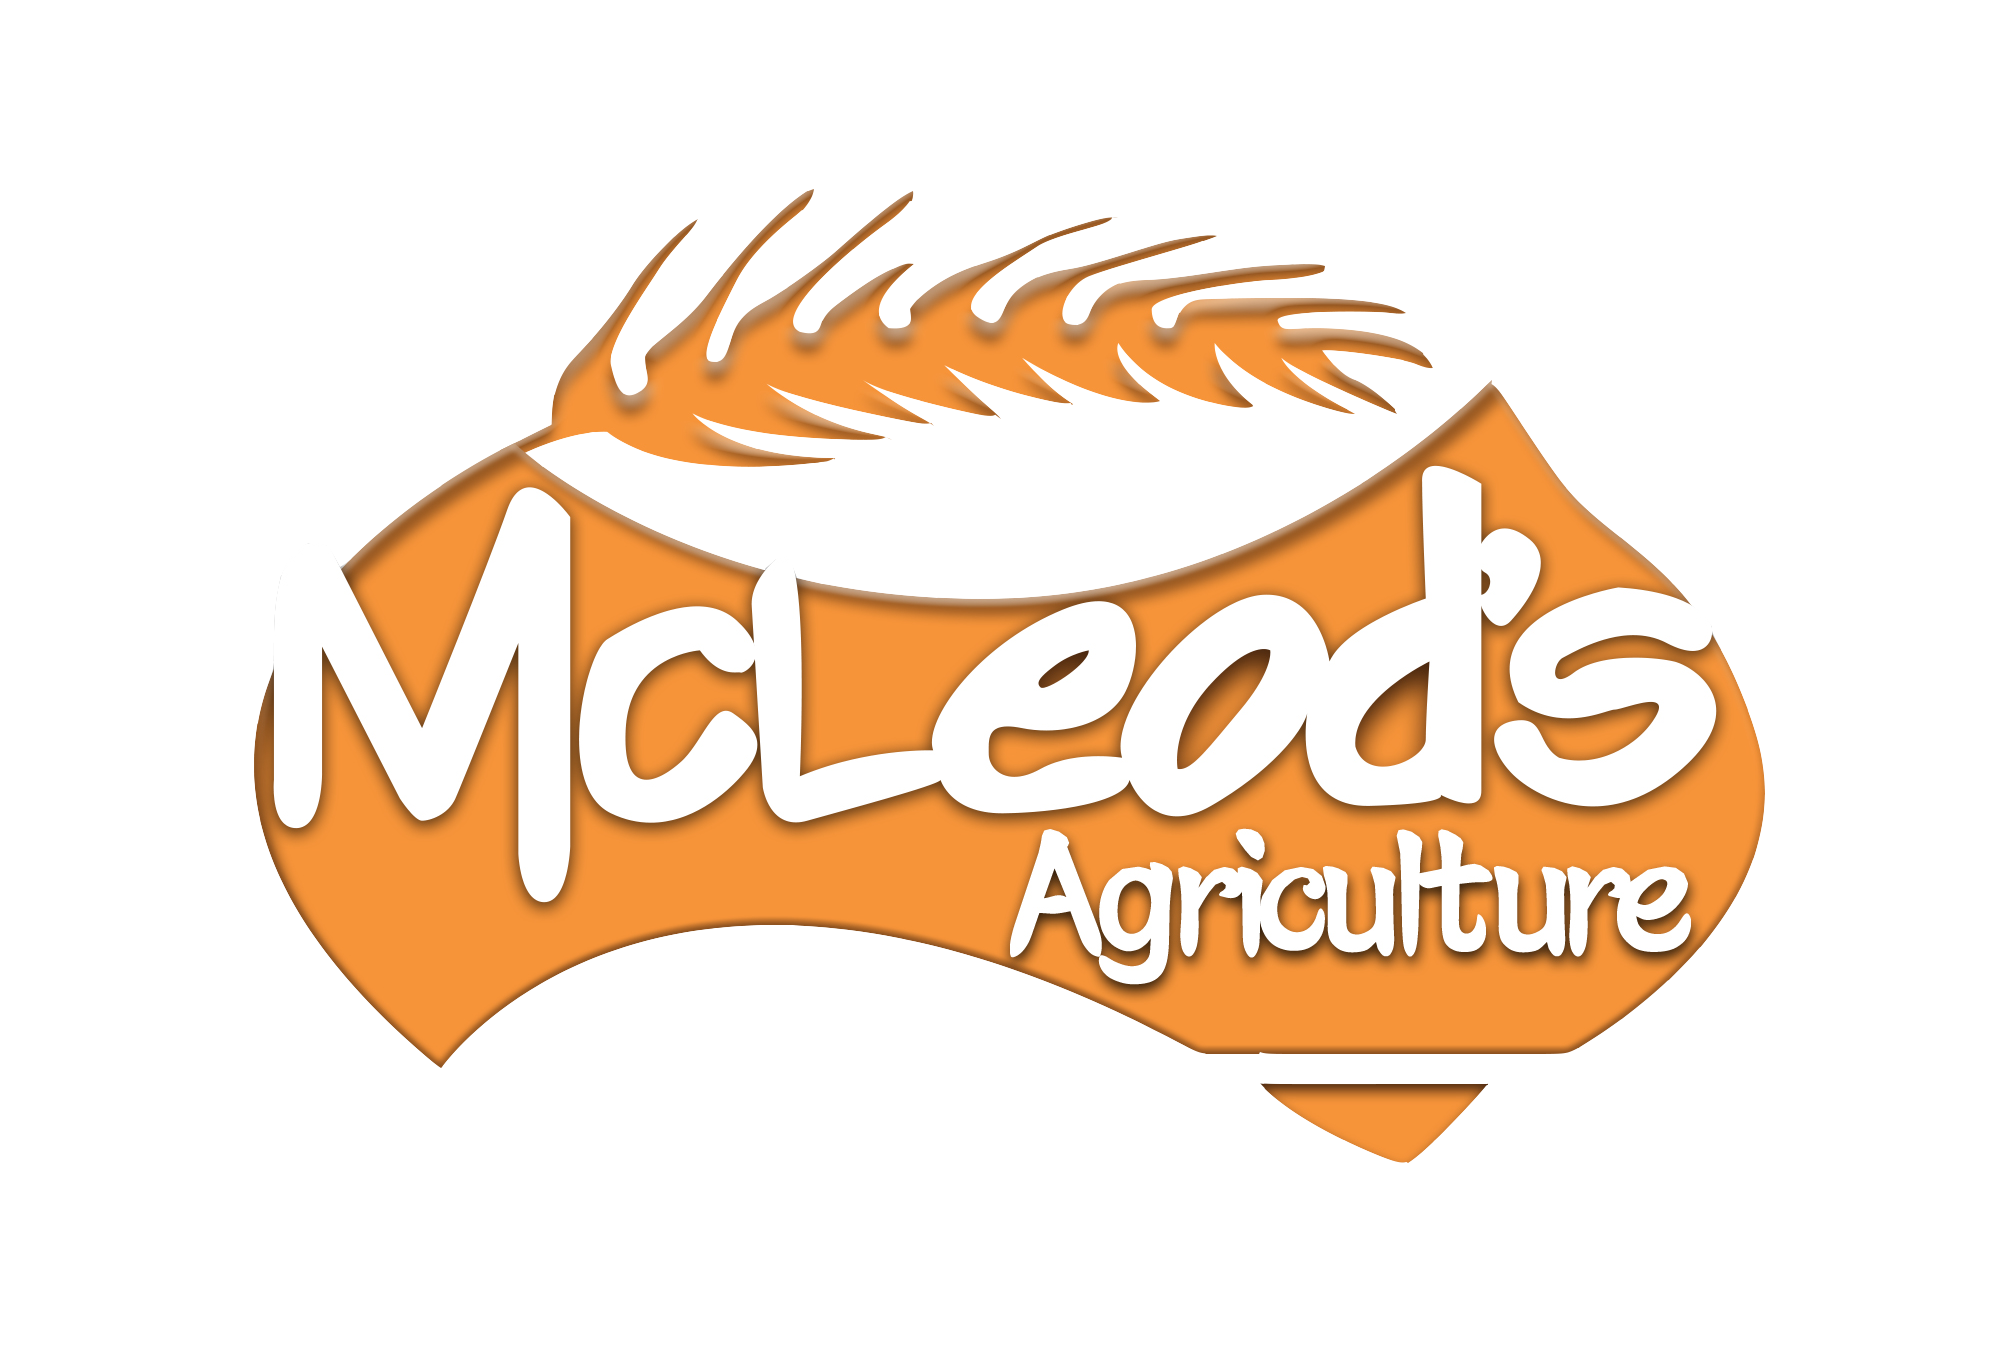 Mcleod's Organic Fertiliser